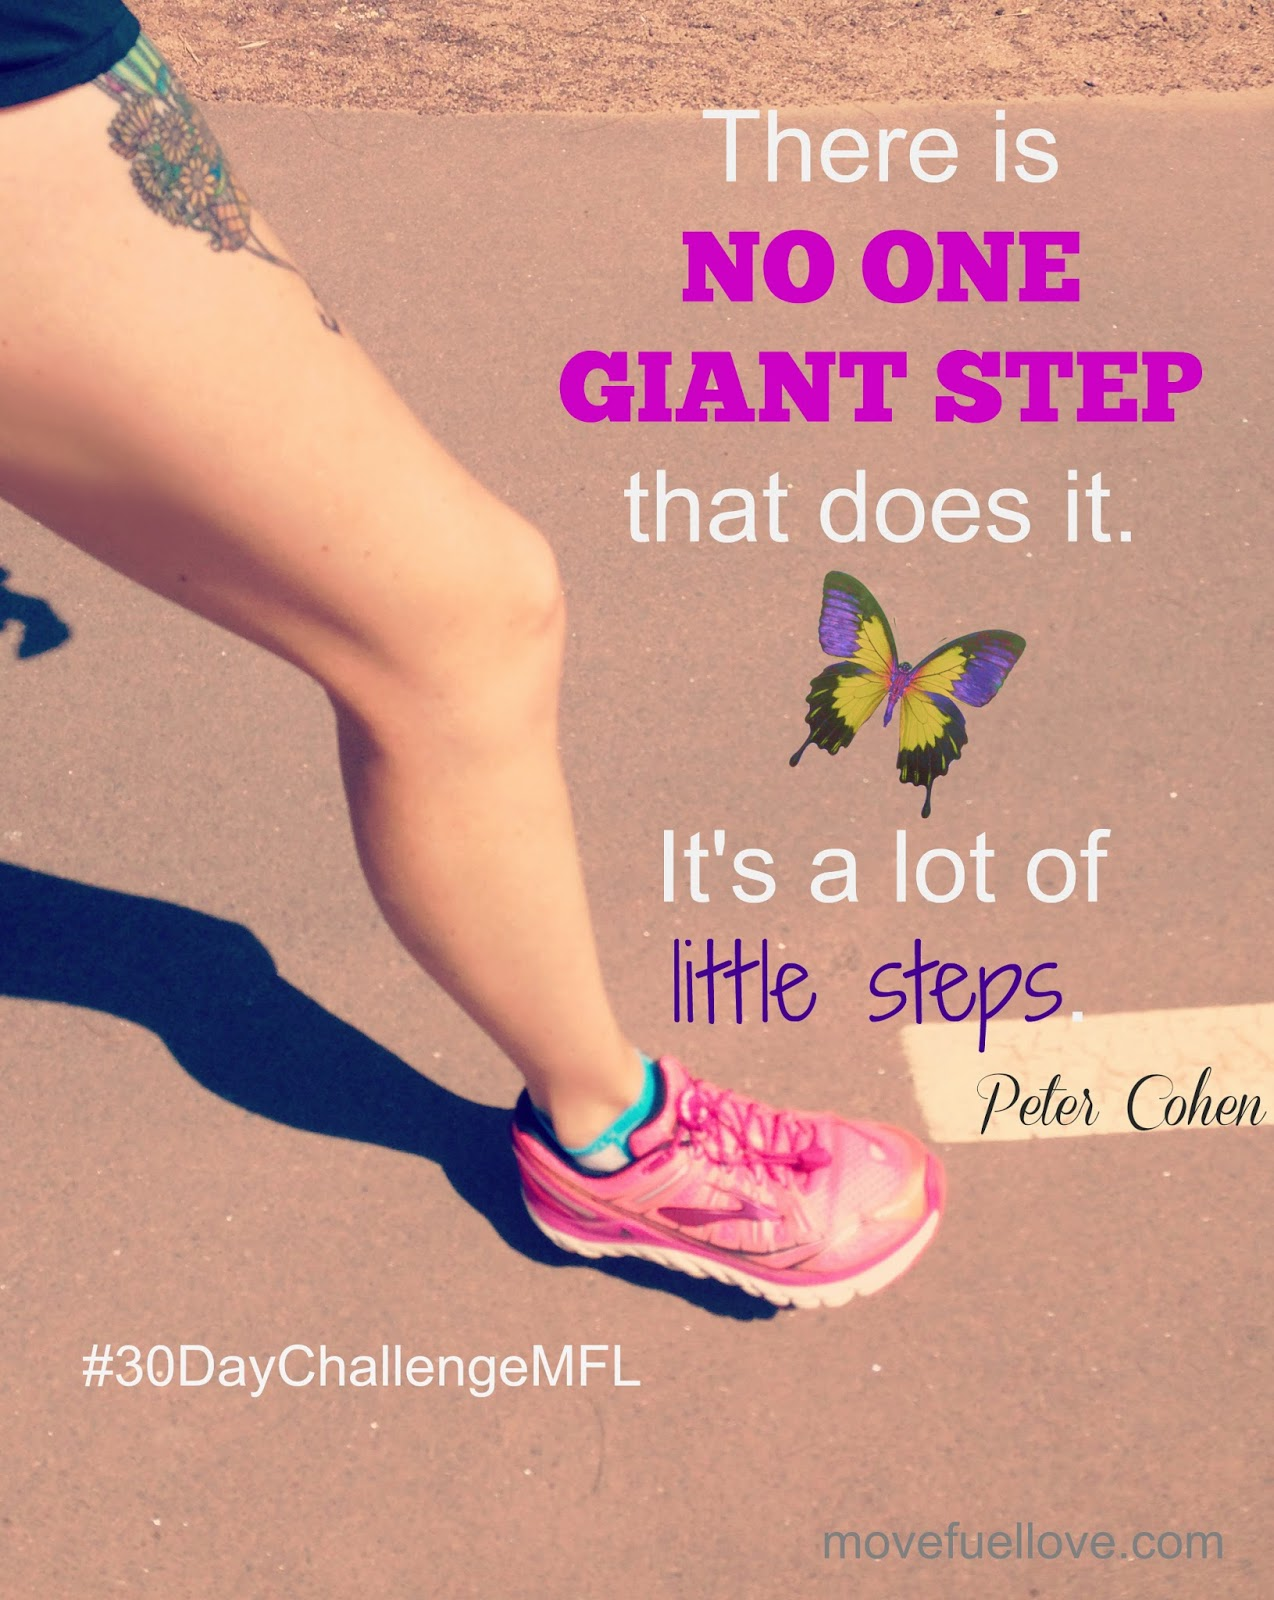 30 day challenge, fitness inspiration, motivation, win, giveaway, garmin, run, walk, swim, cycle, yoga, #30DayChallengeMFL, move fuel love, exercise, November challenge